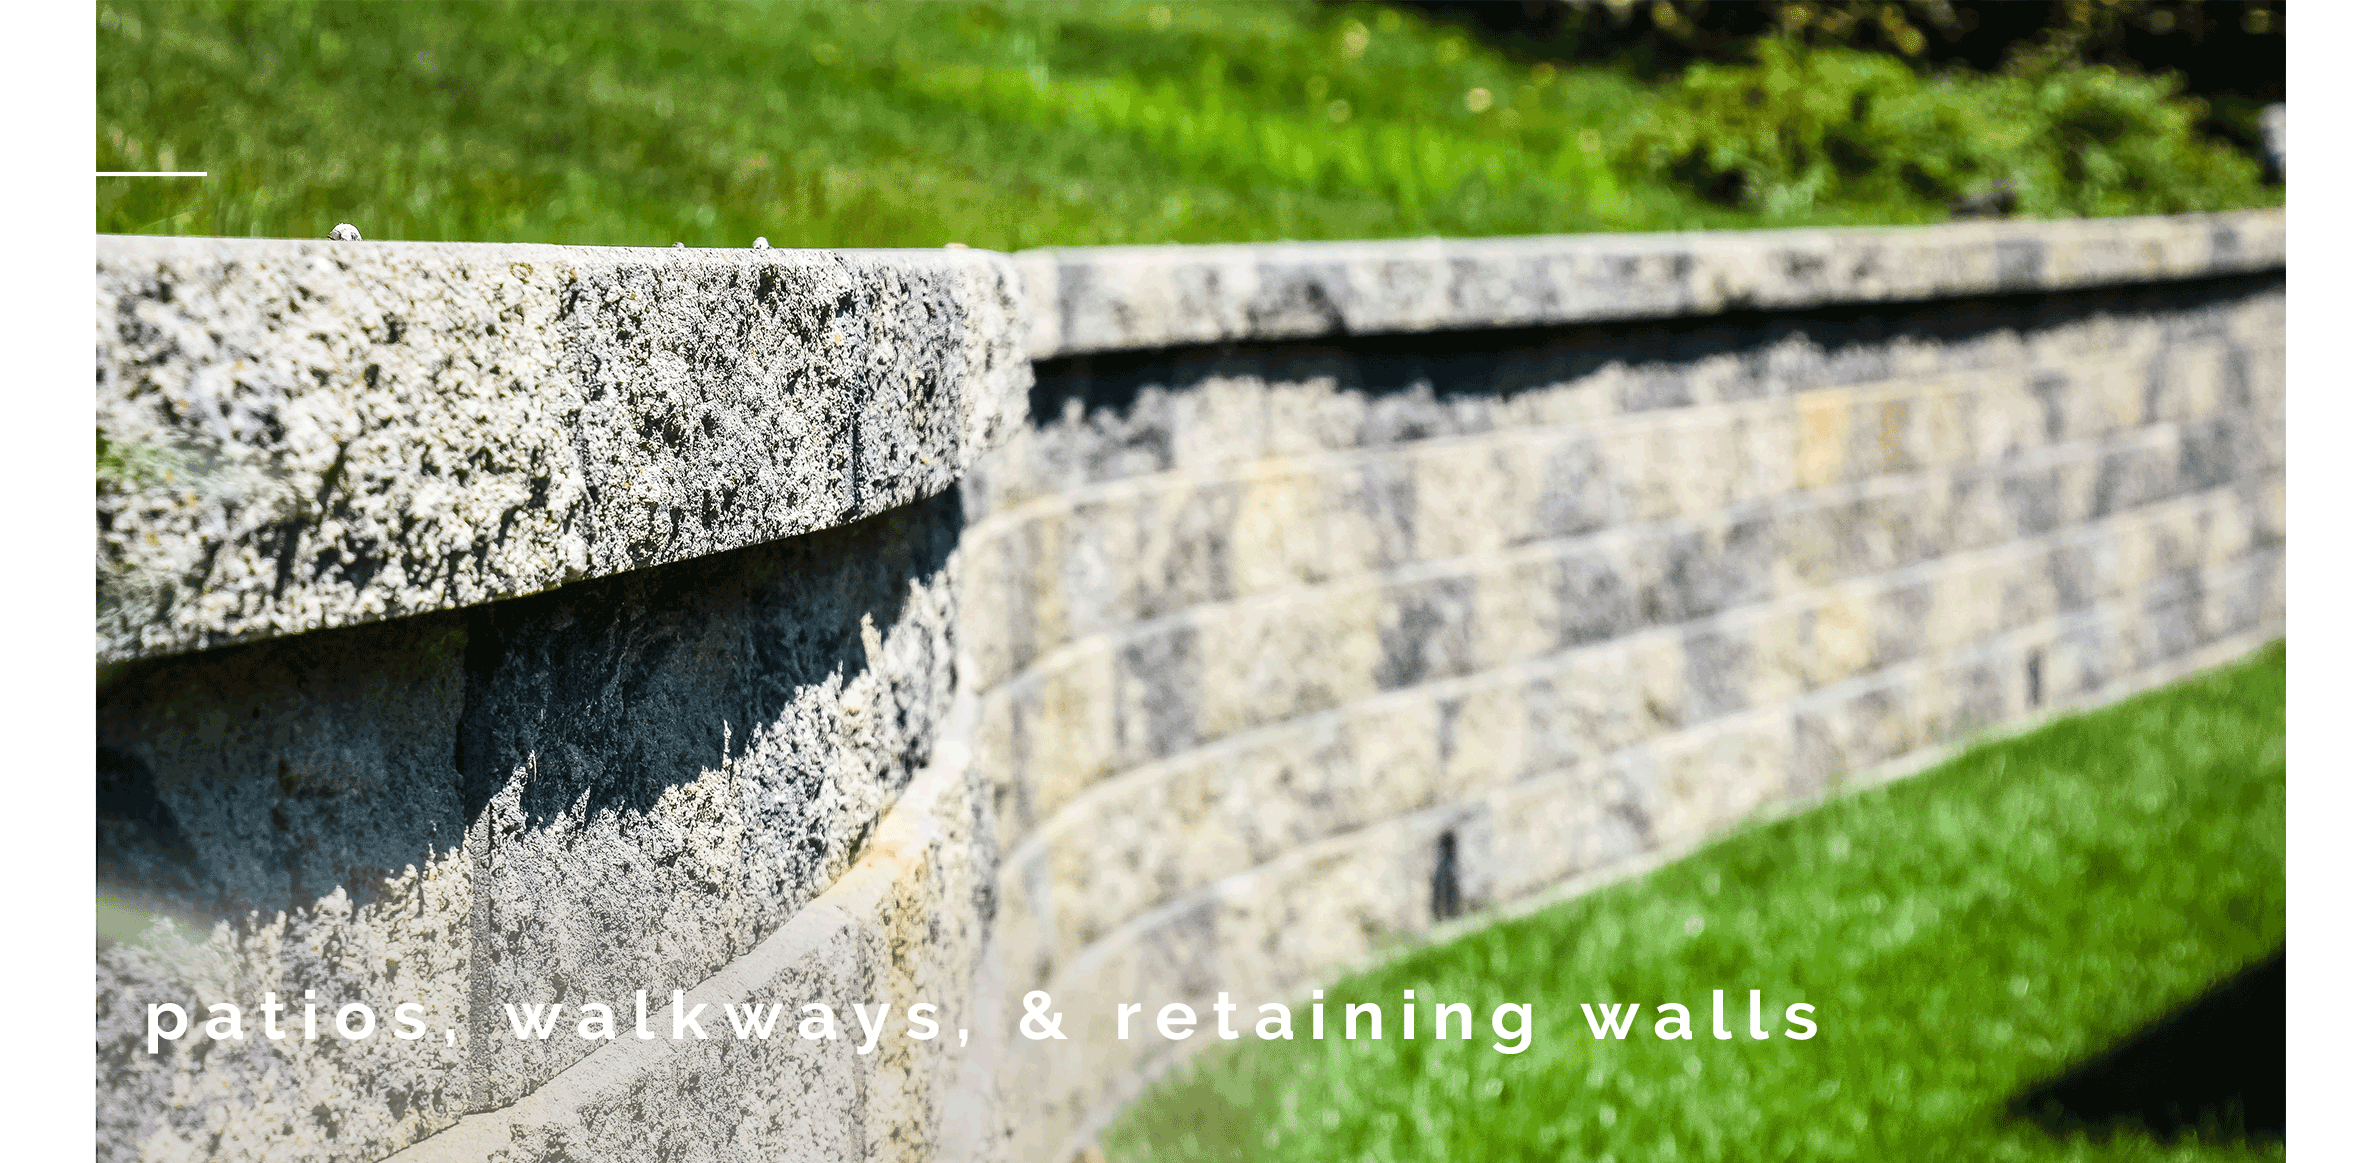 Patios, walkways, and retaining walls by Buckeye Landscapes and Design